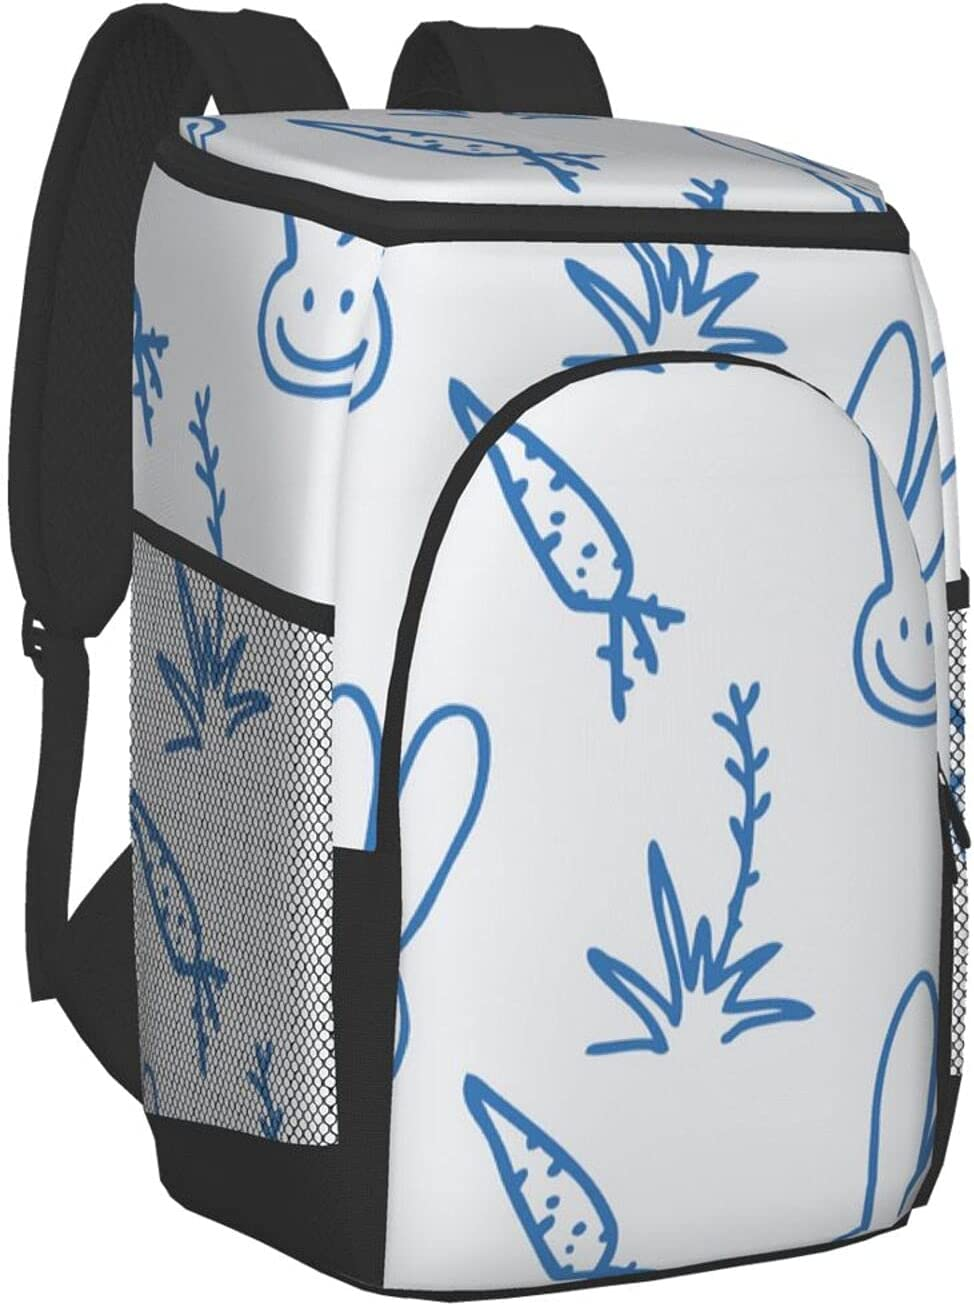 Bee and Honeycomb Cooler Backpack Soft Insulated C Bag 2021 spring Ranking TOP6 summer new Leakproof